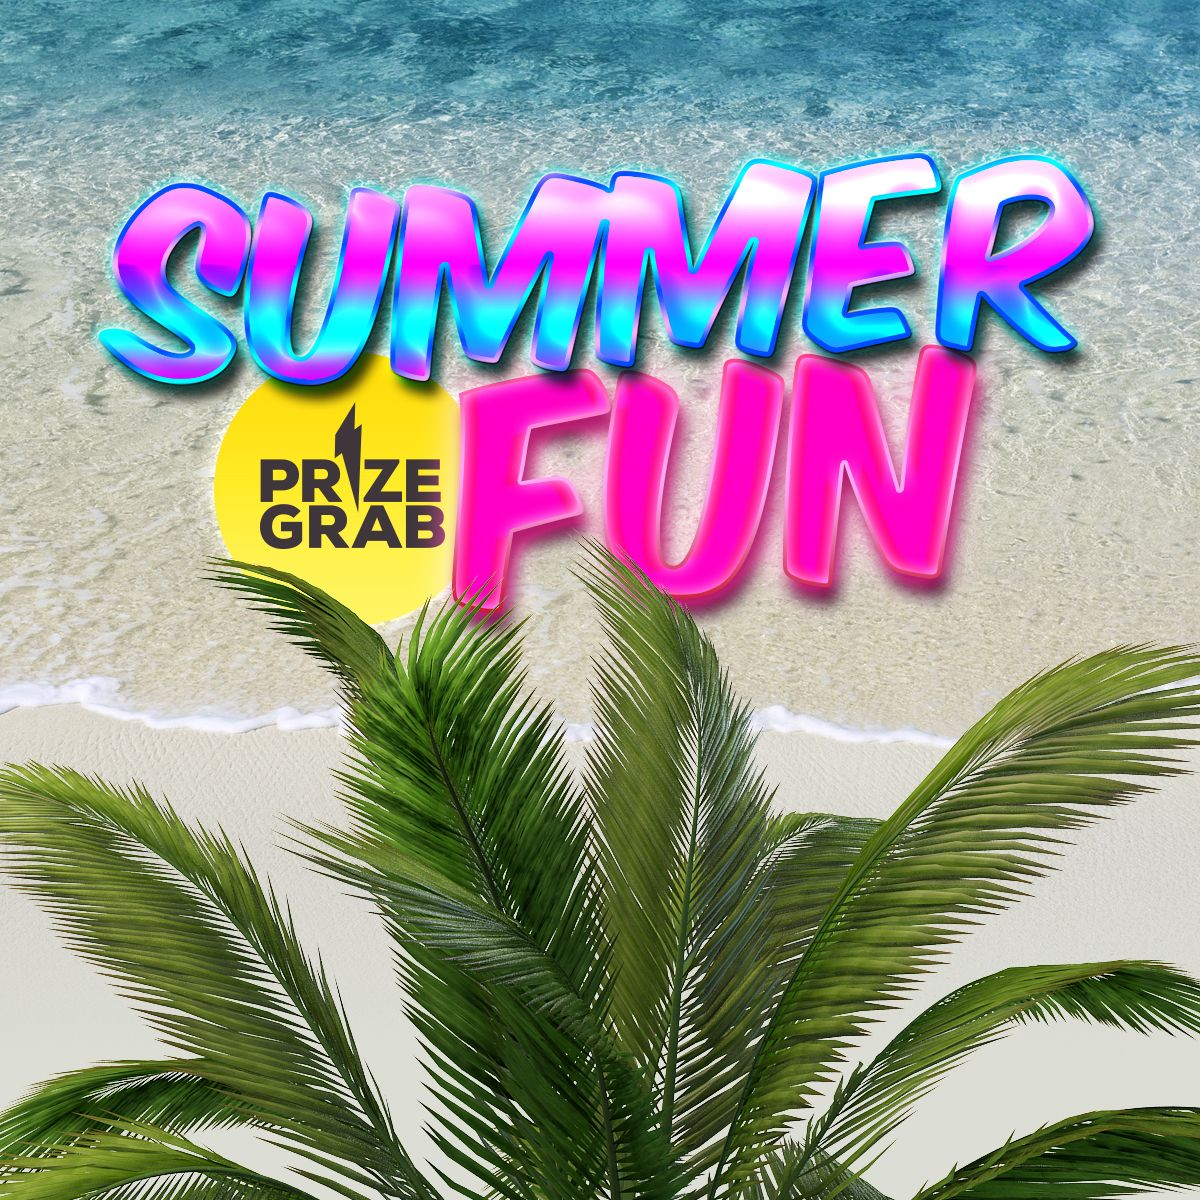 Summer Fun Sweepstakes & Giveaways | Winners Daily - PrizeGrab com